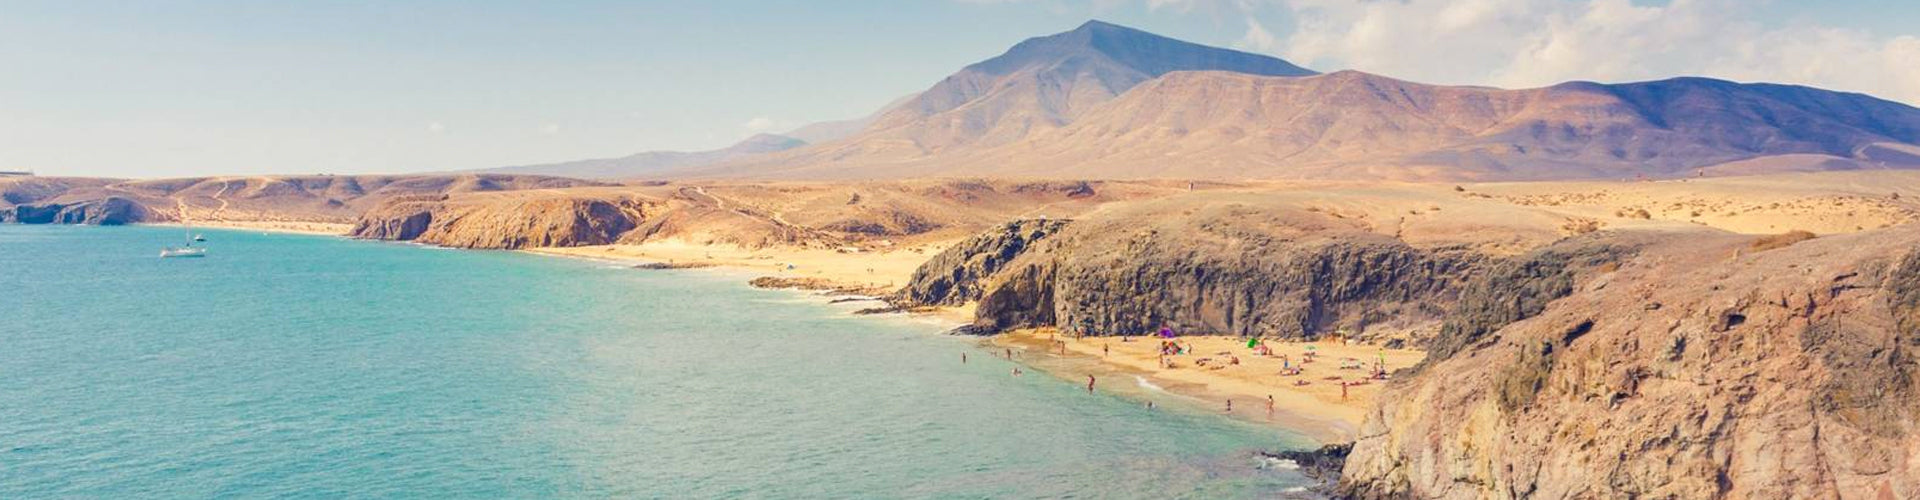 The Island of Lanzarote